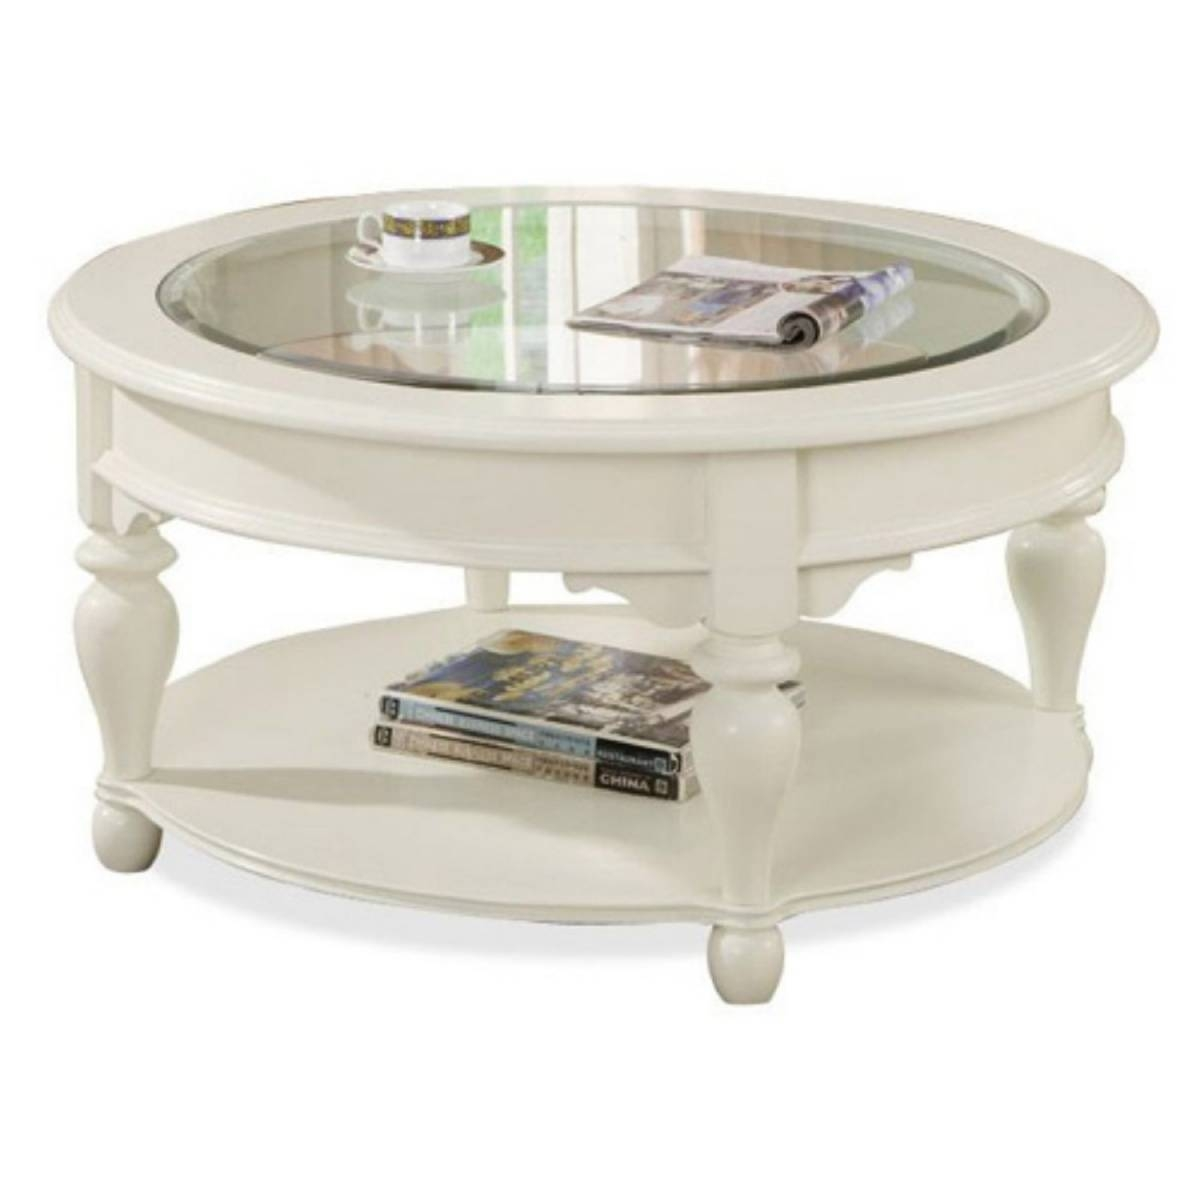 Astonishing White Coffee Table Living Room Decor Ideas – White throughout Round Coffee Tables With Storage (Image 1 of 30)